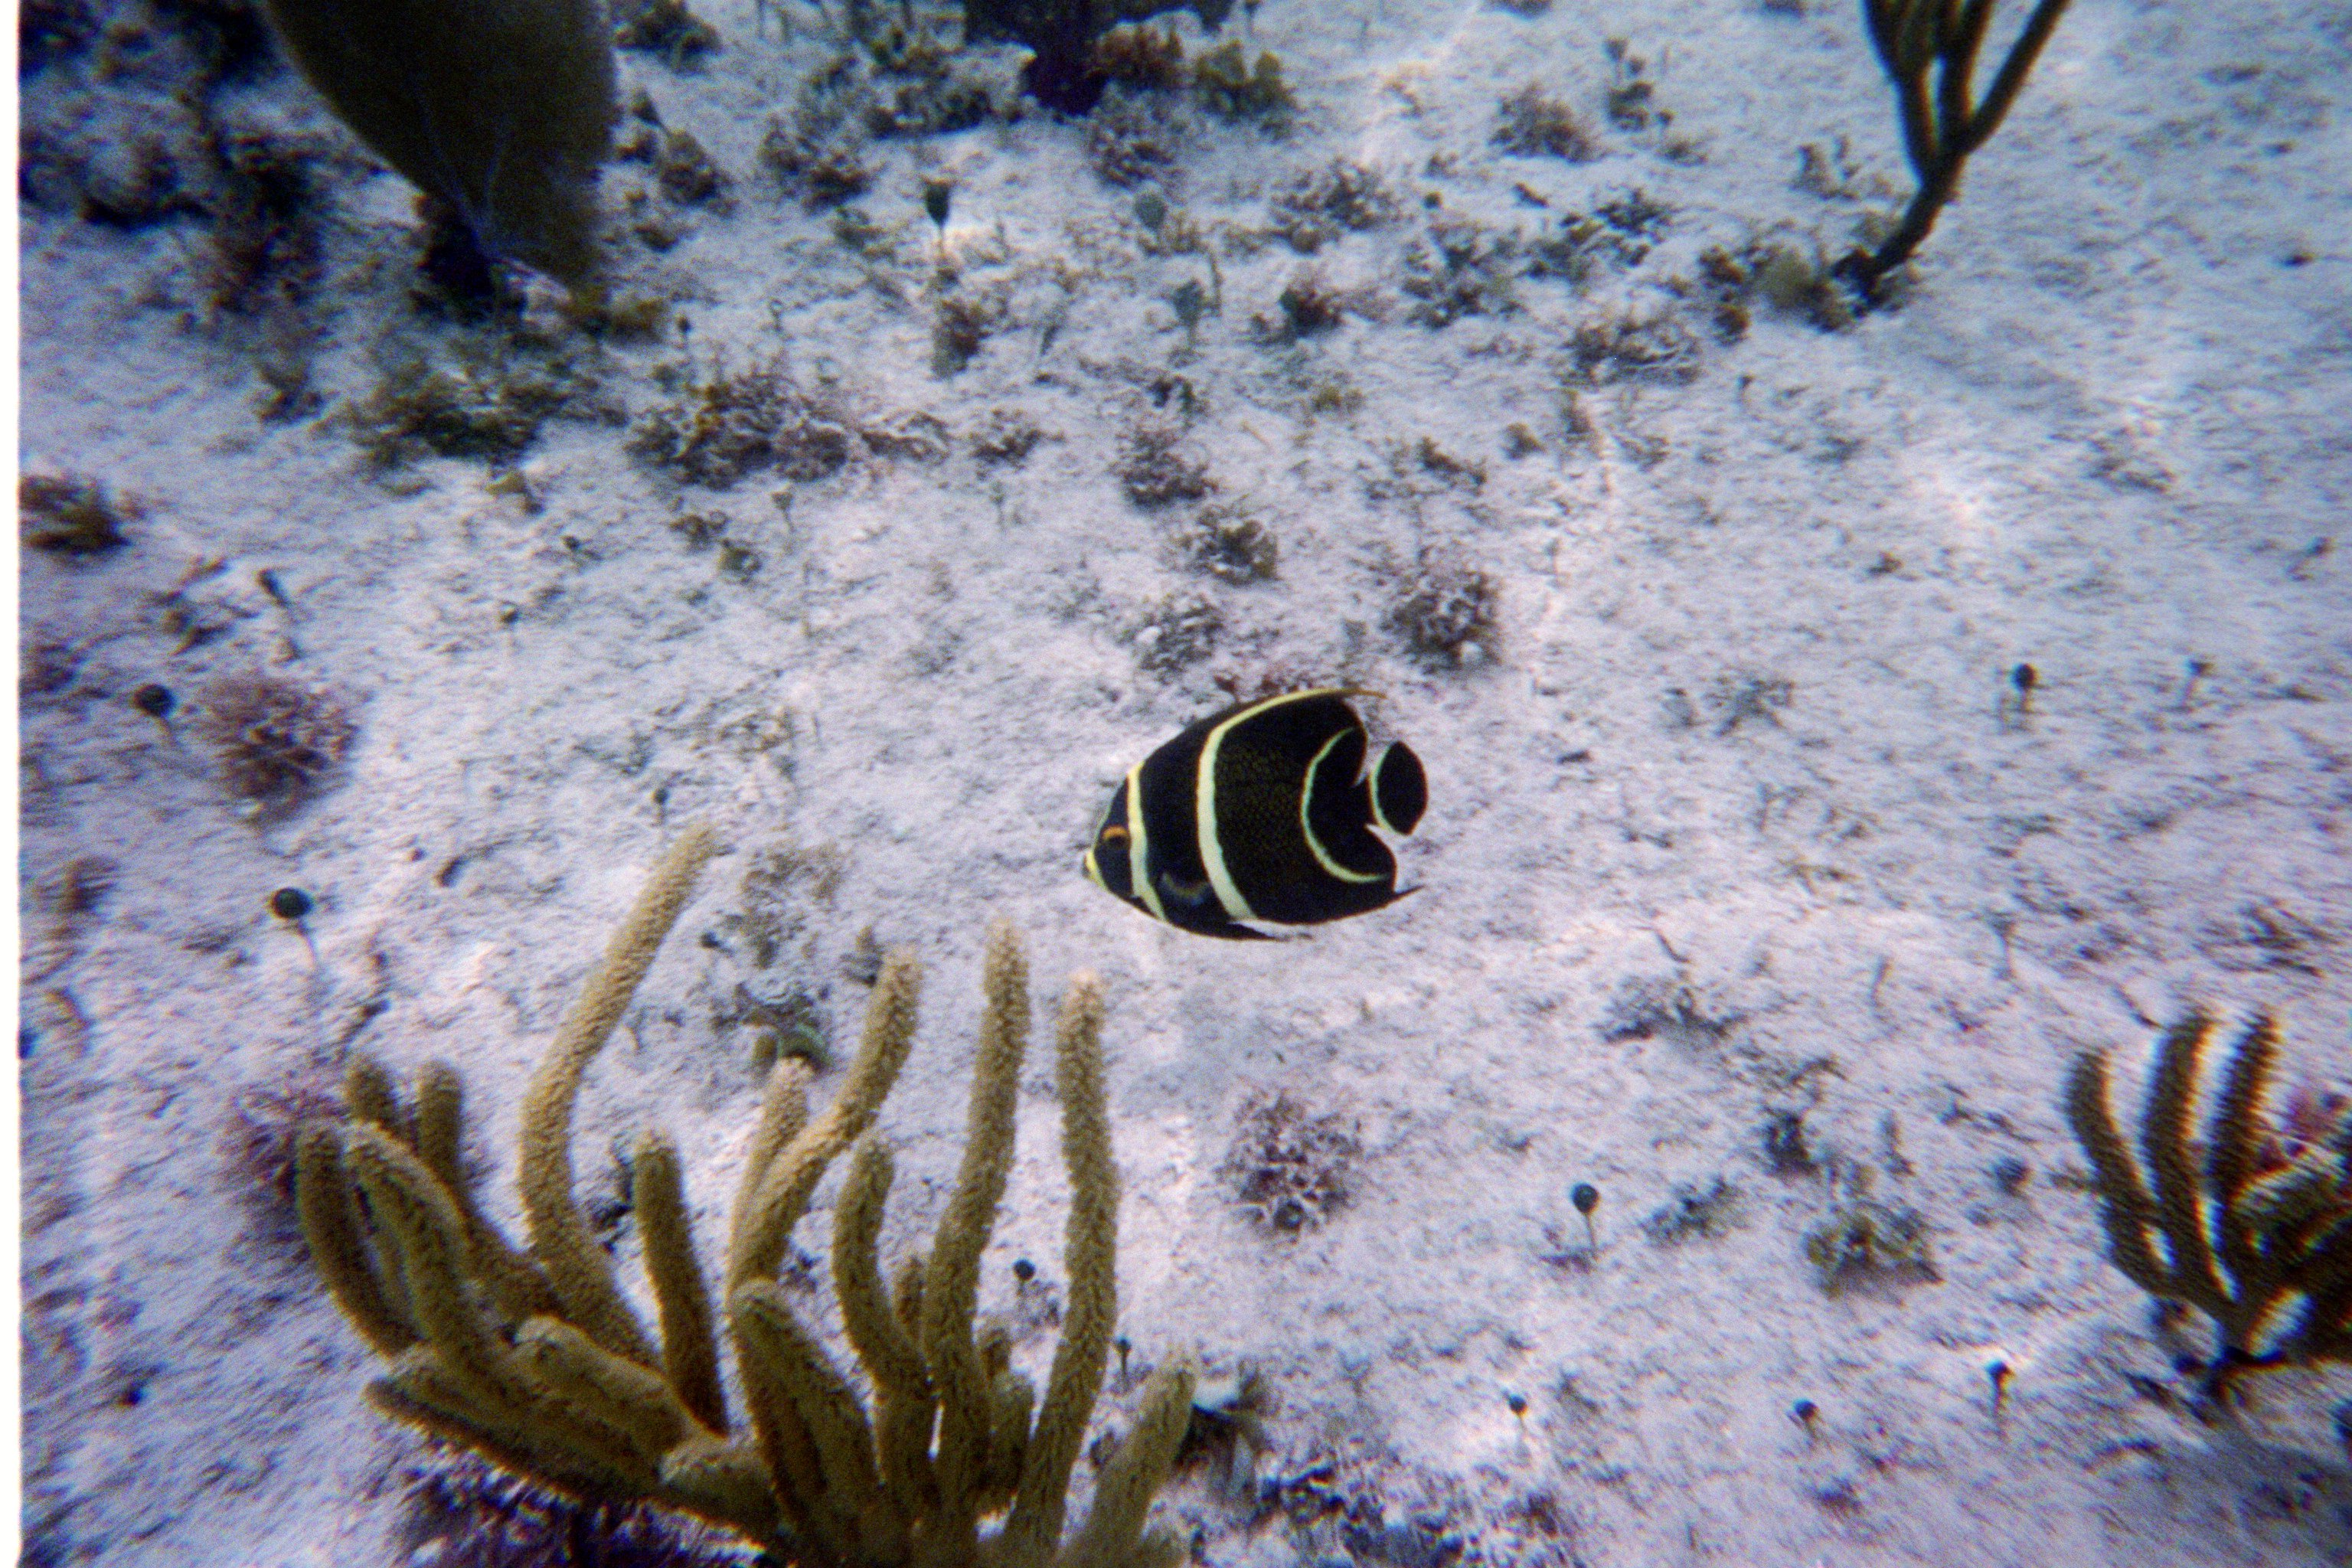 A Beautiful Little Black And Yellow Striped Fish Snapped By Our Underwater Camera While Snorkeling At